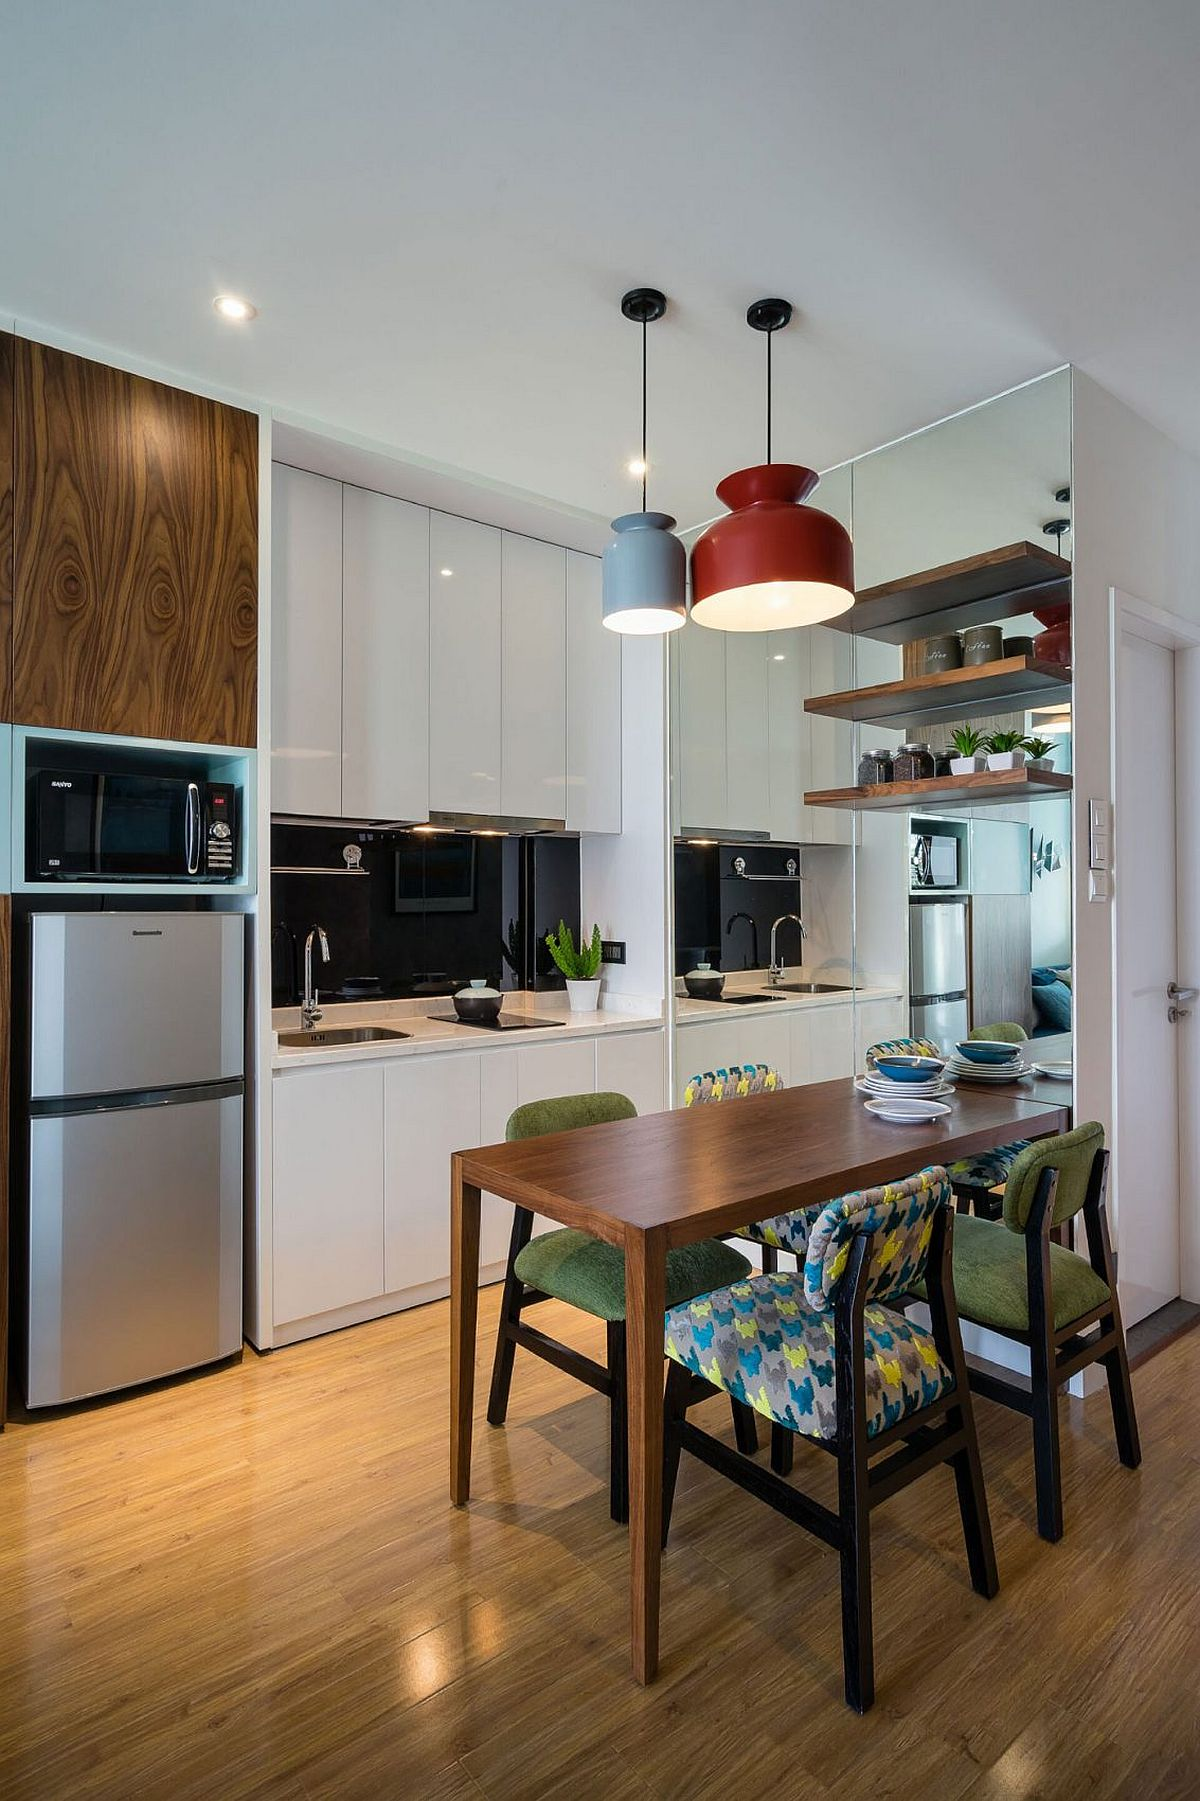 Pendant lights and metallic finishes give the kitchen and dining an airy ambiance